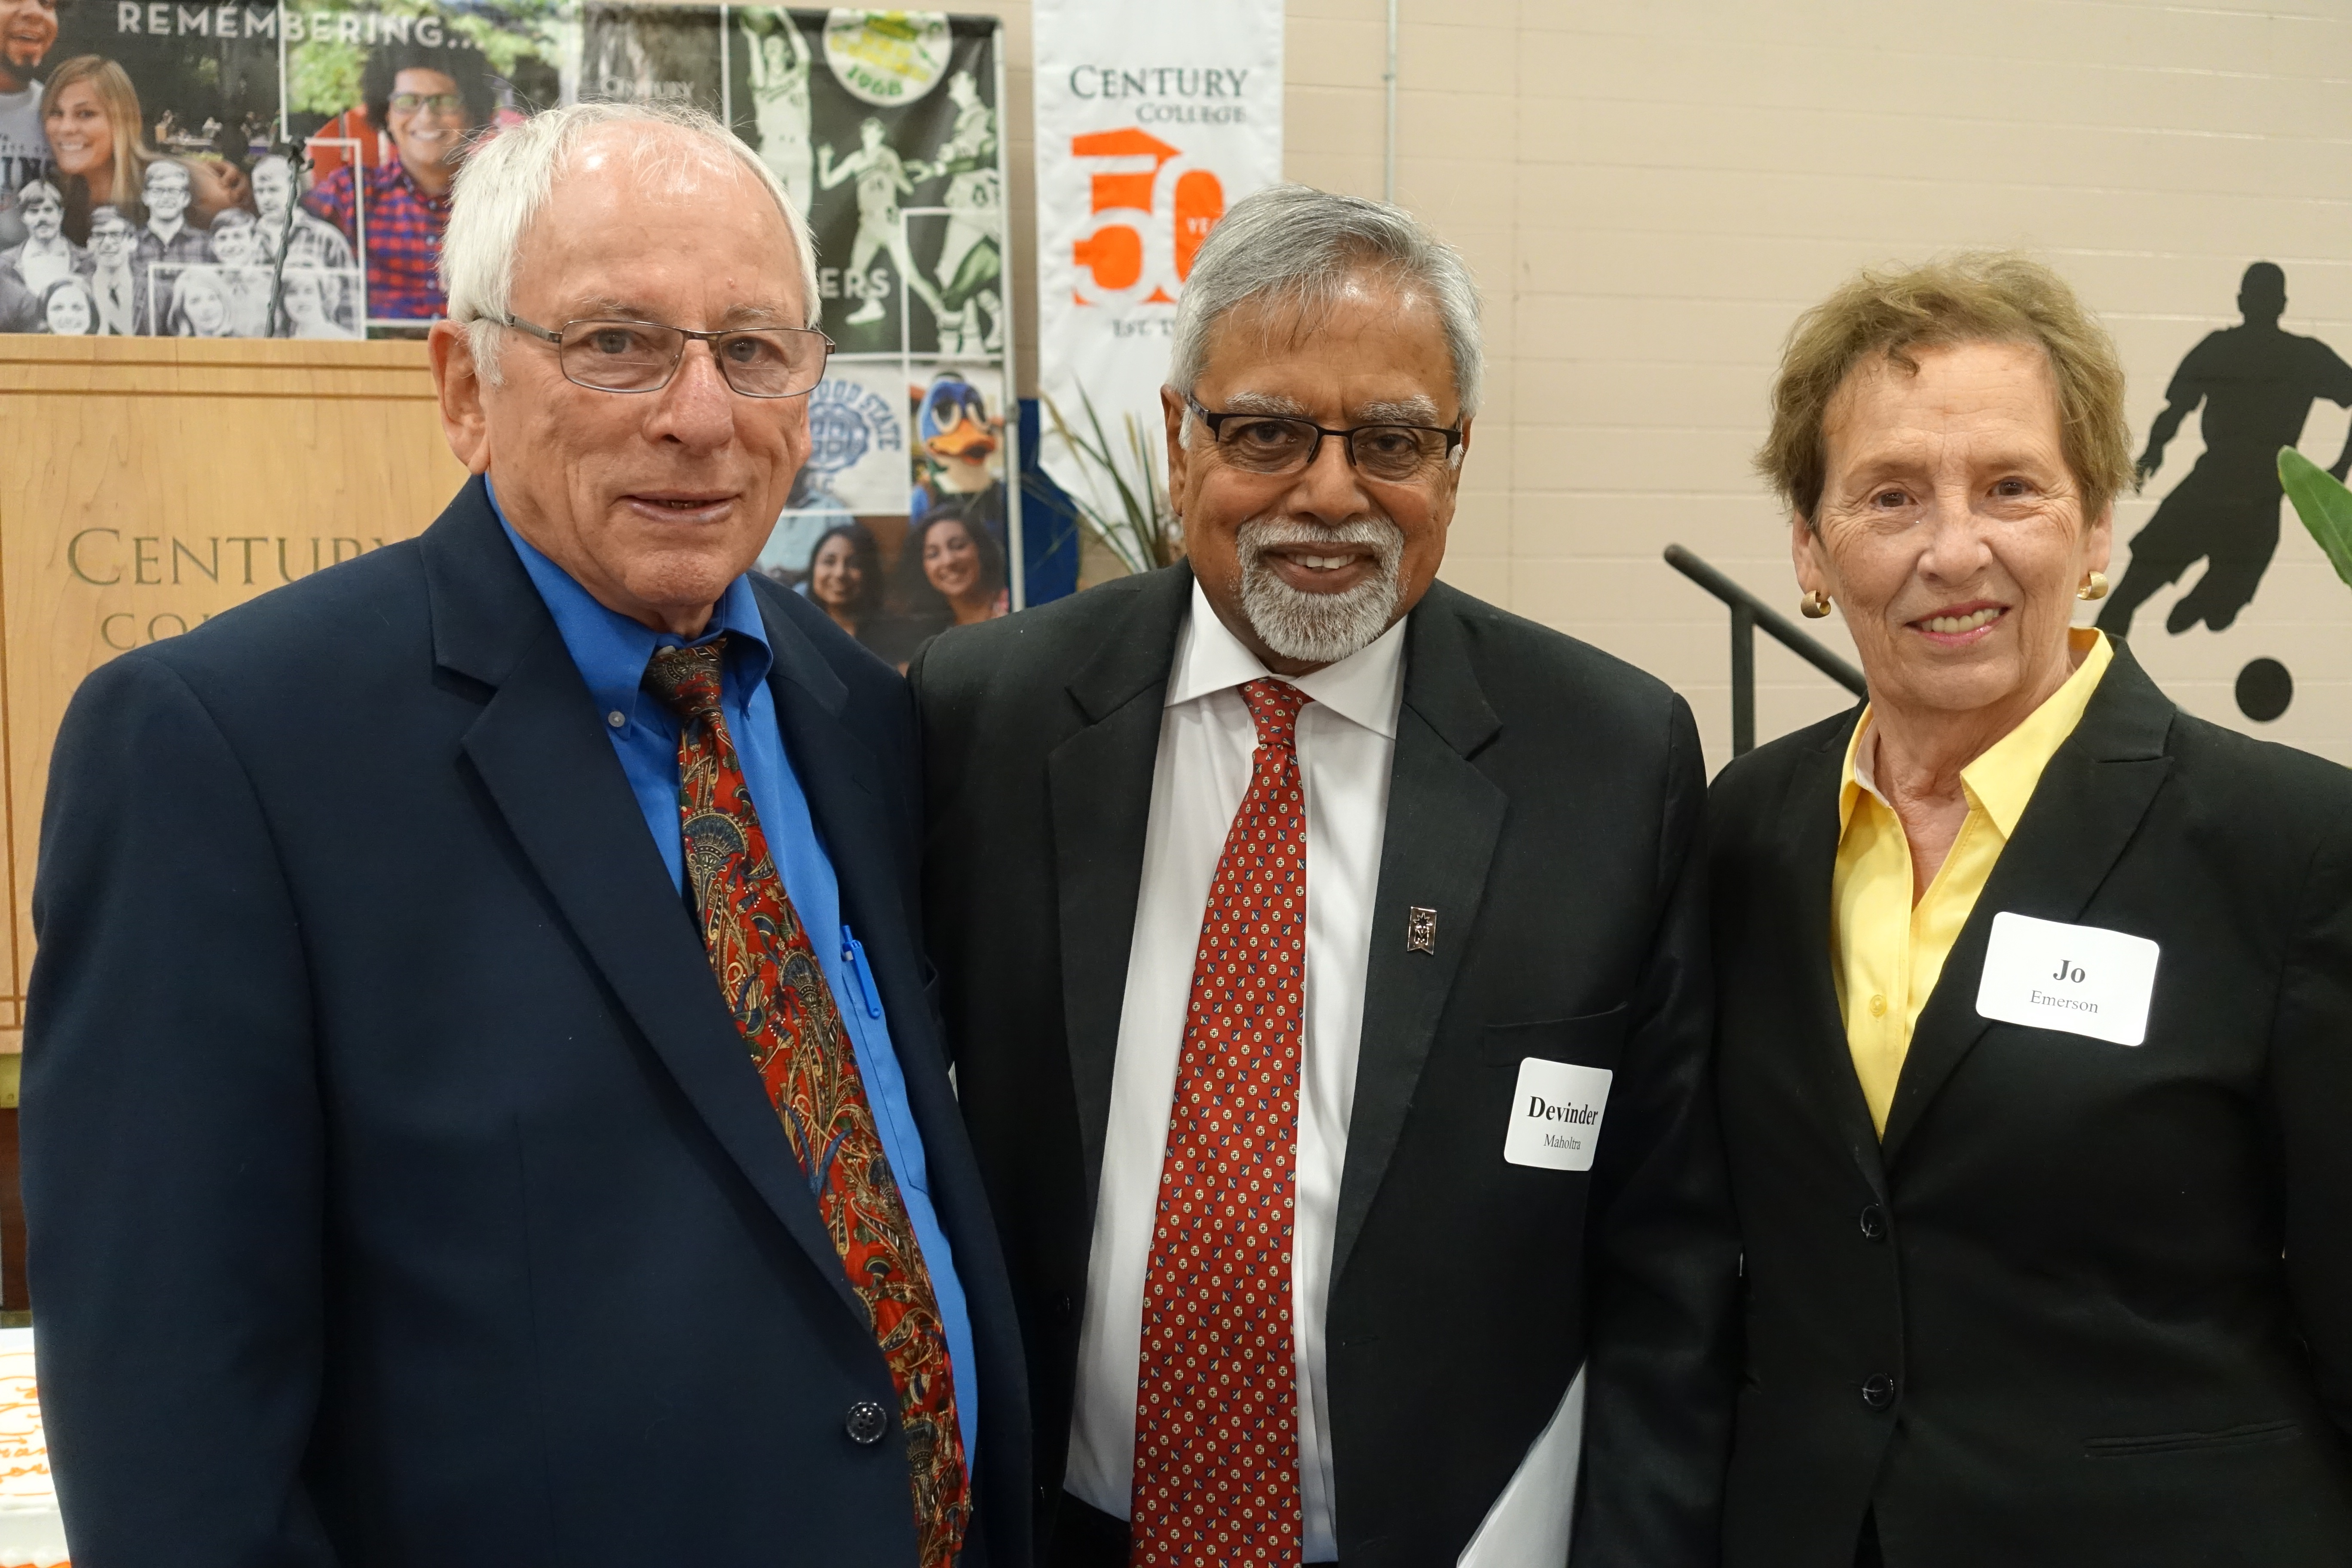 Mayors of White Bear Lake and Mahtomedi with Chancellor Devinder Malhotra